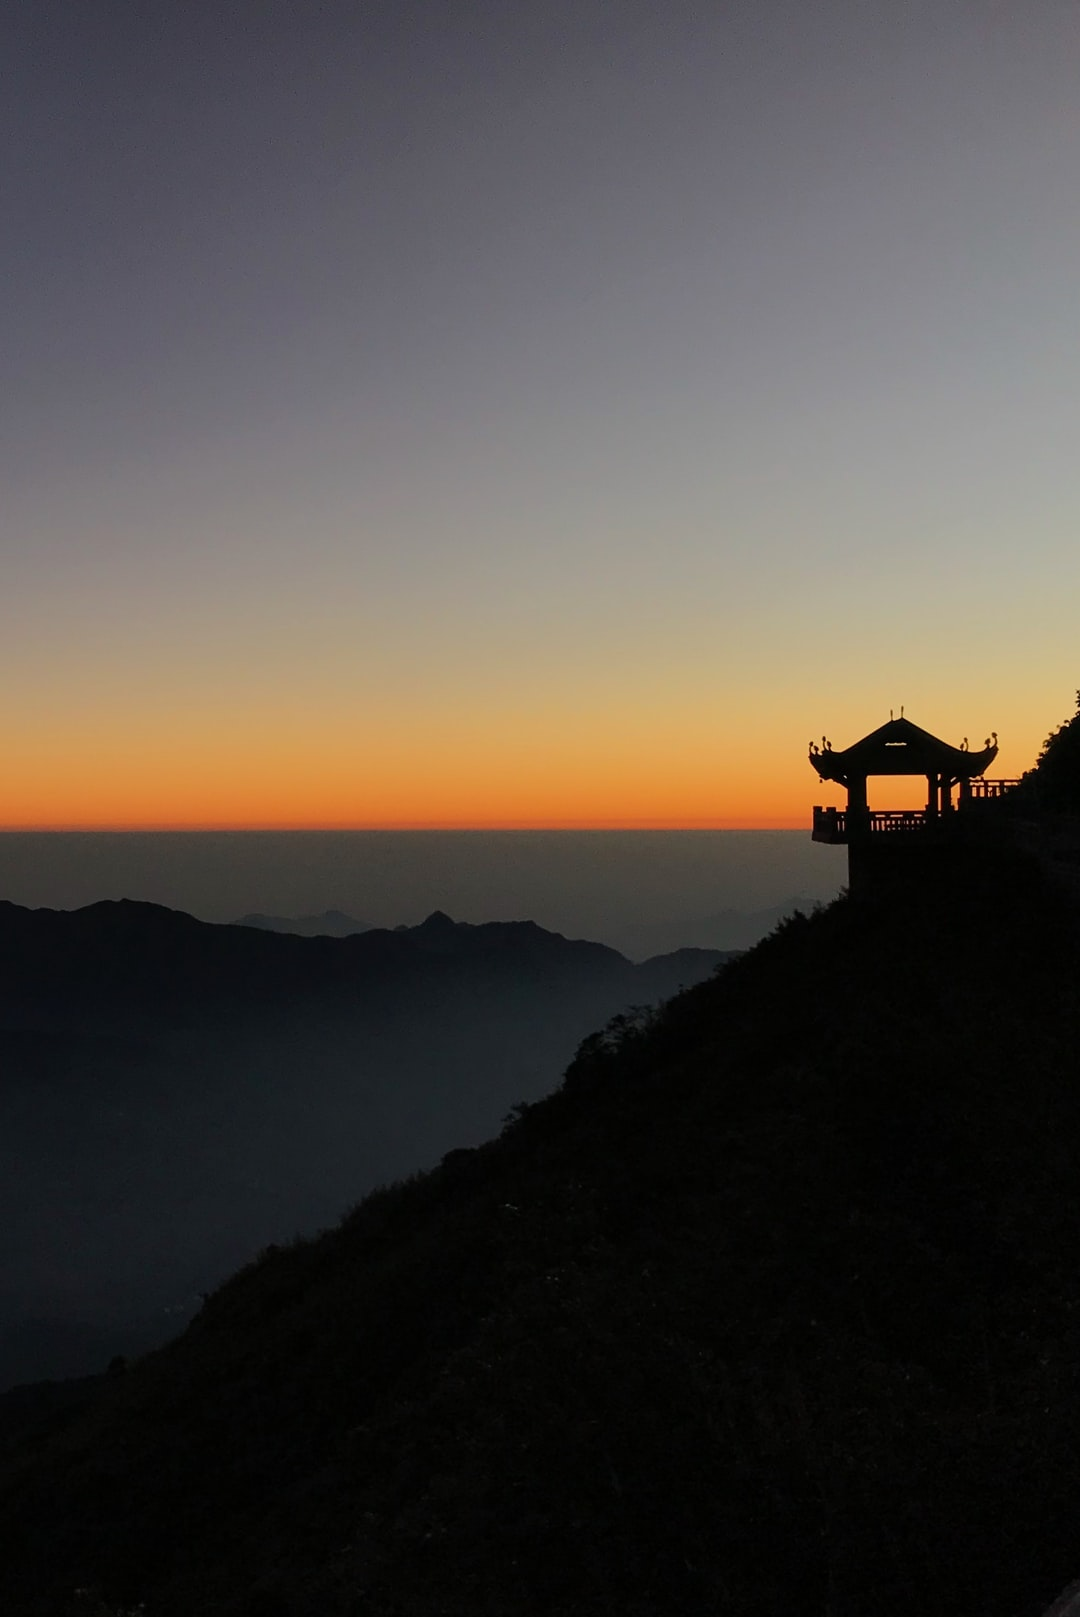 Sunrise at the summit of Mount Fansipan